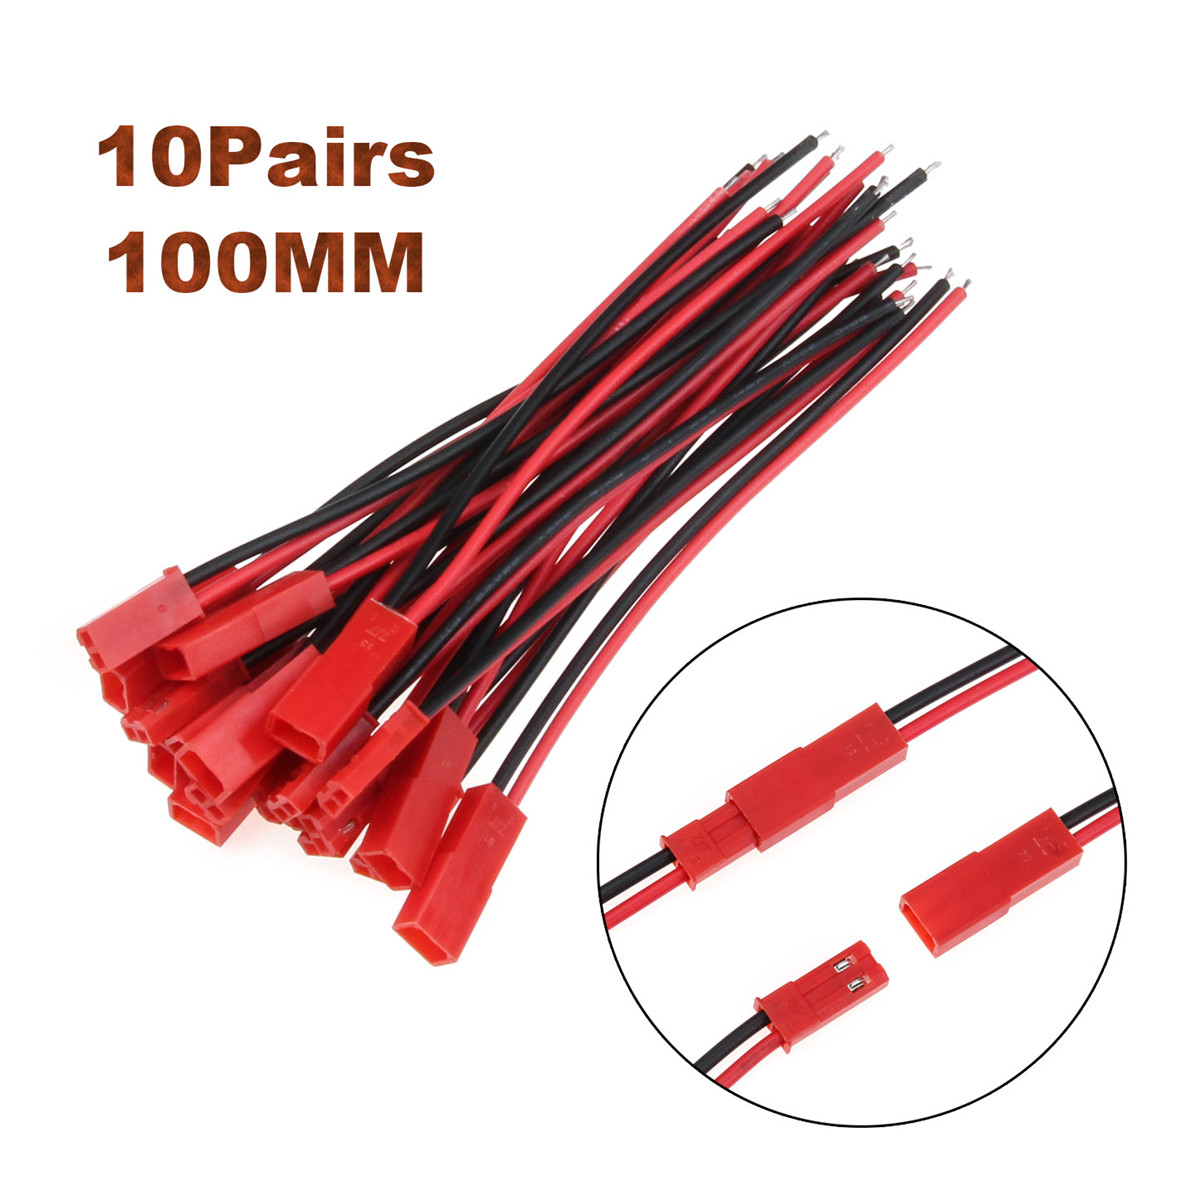 2/10 Pairs 100mm 10cm Male Female 2-Pin Connector JST Plug Cable For RC BEC Battery Helicopter DIY FPV Drone Quadcopter(China)